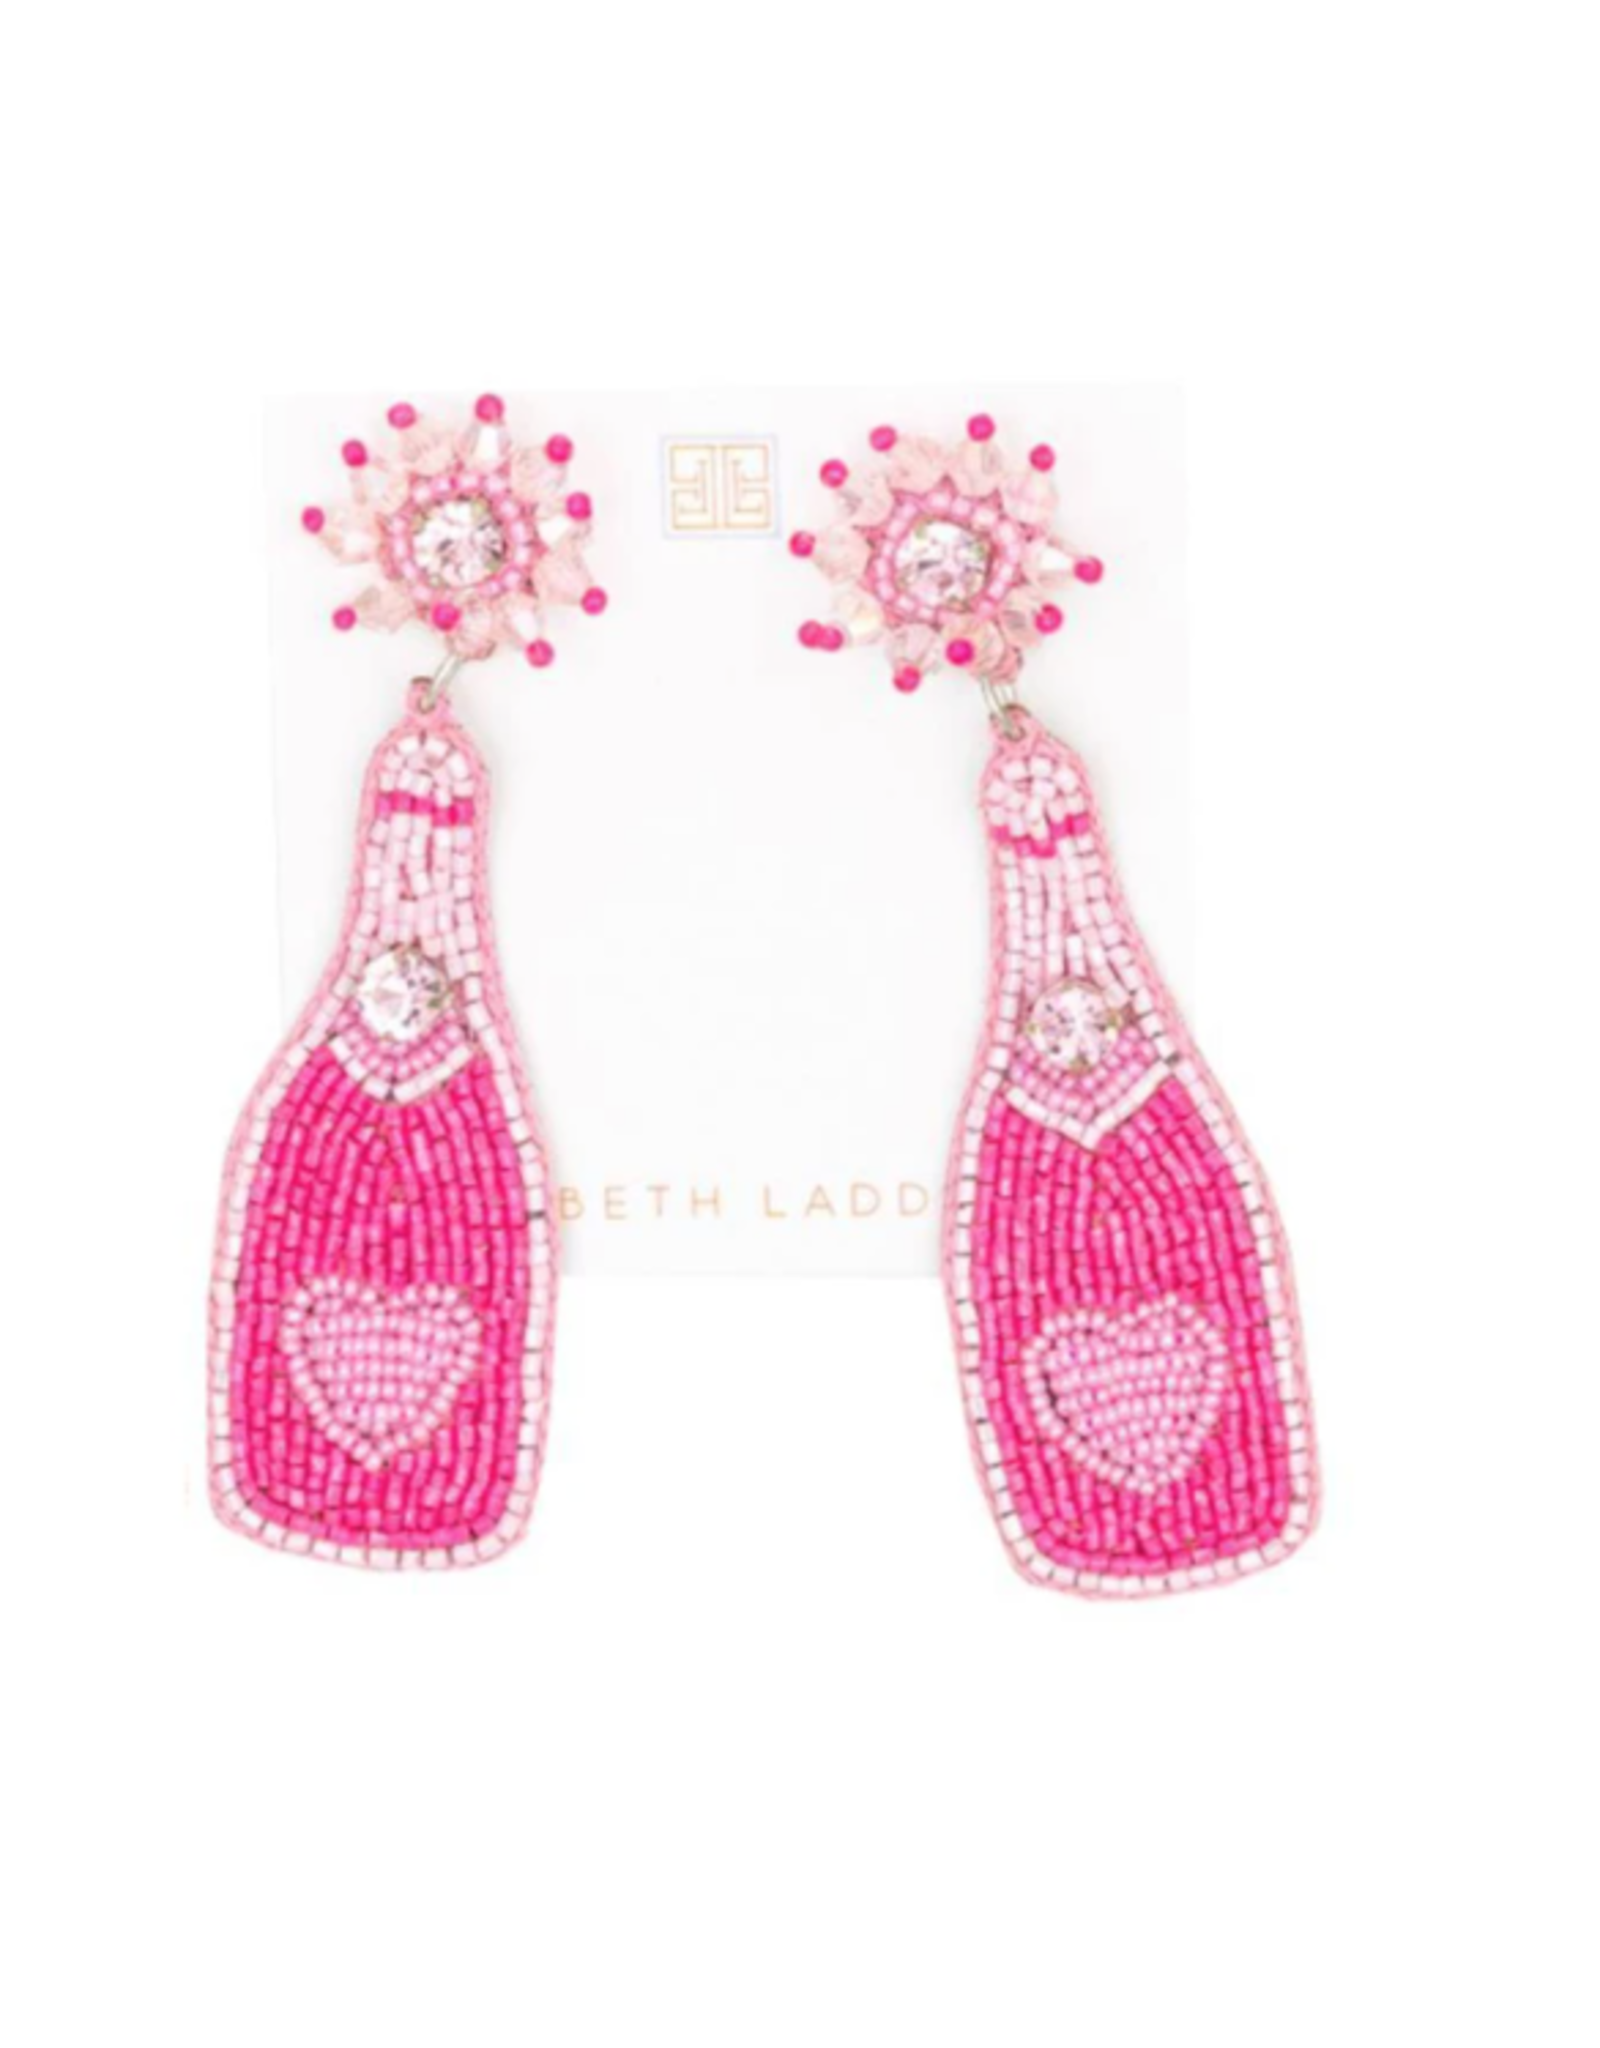 Beth Ladd Collection Heart Champagne Earrings by Beth Ladd